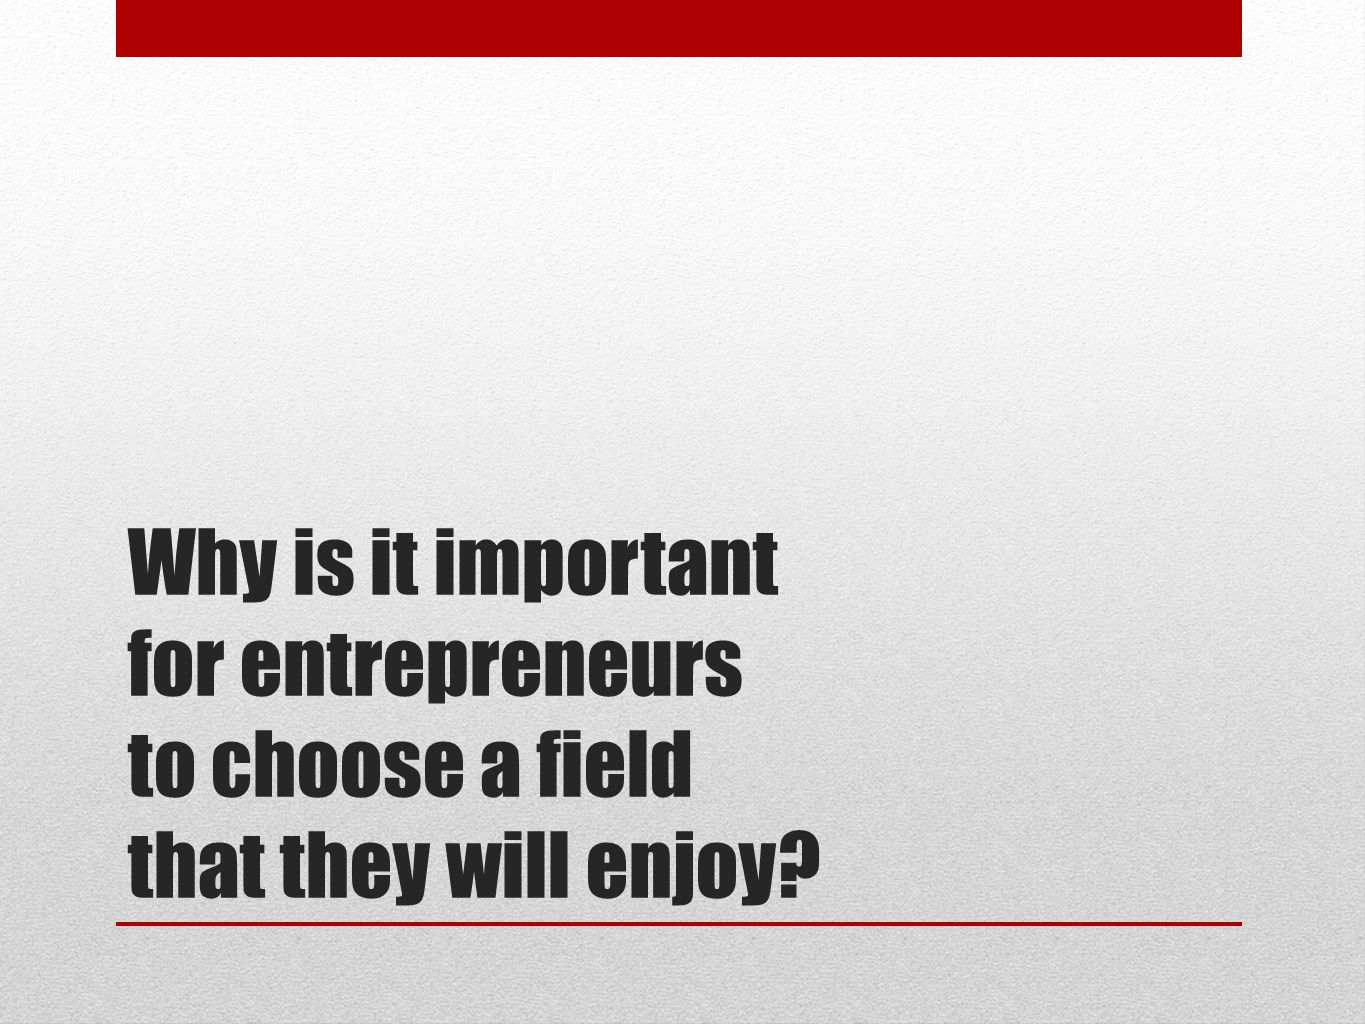 Why is it important for entrepreneurs to choose a field that they will enjoy?